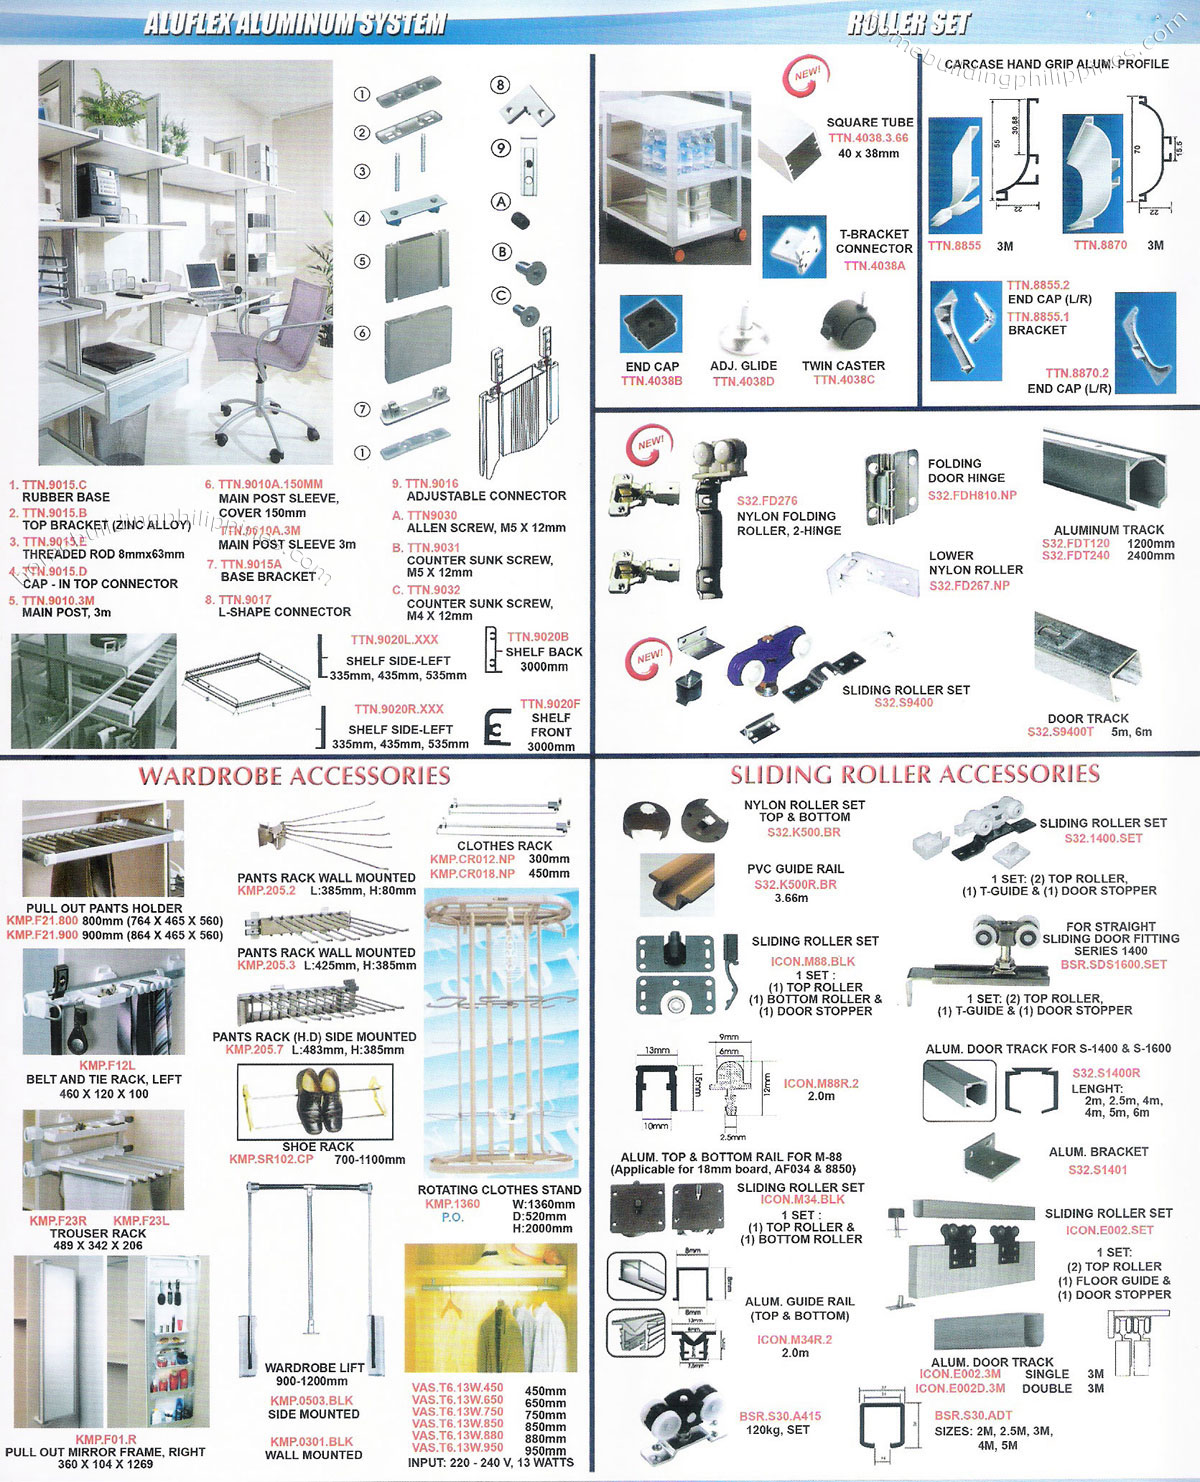 Bathroom Fixtures Philippines aluflex aluminum system, roller set, wardrobe accessories philippines